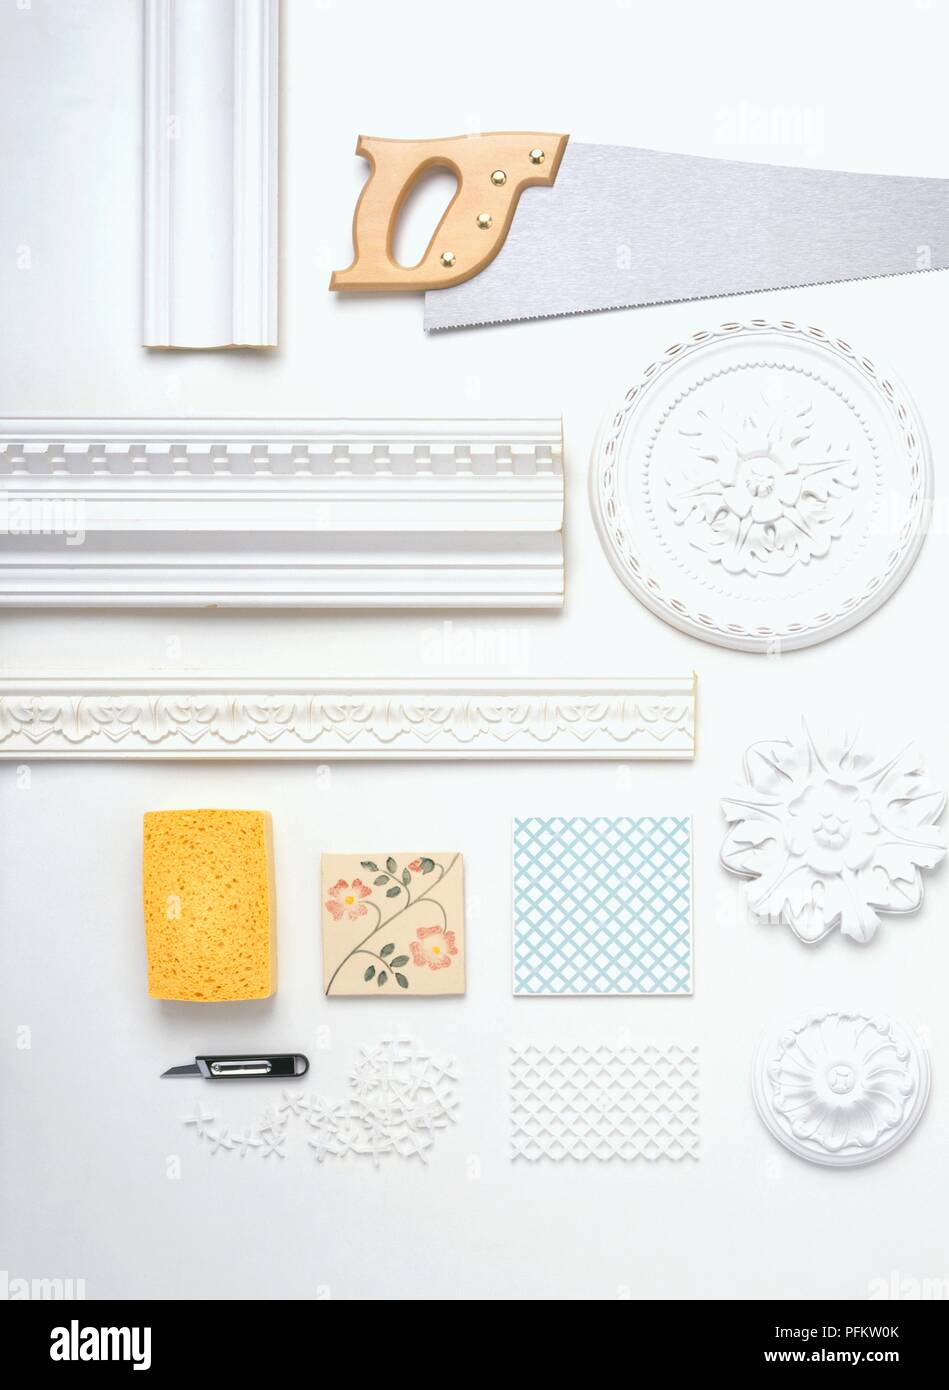 Decorative Plaster Mouldings Ceramic Tile And Tools Stock Photo